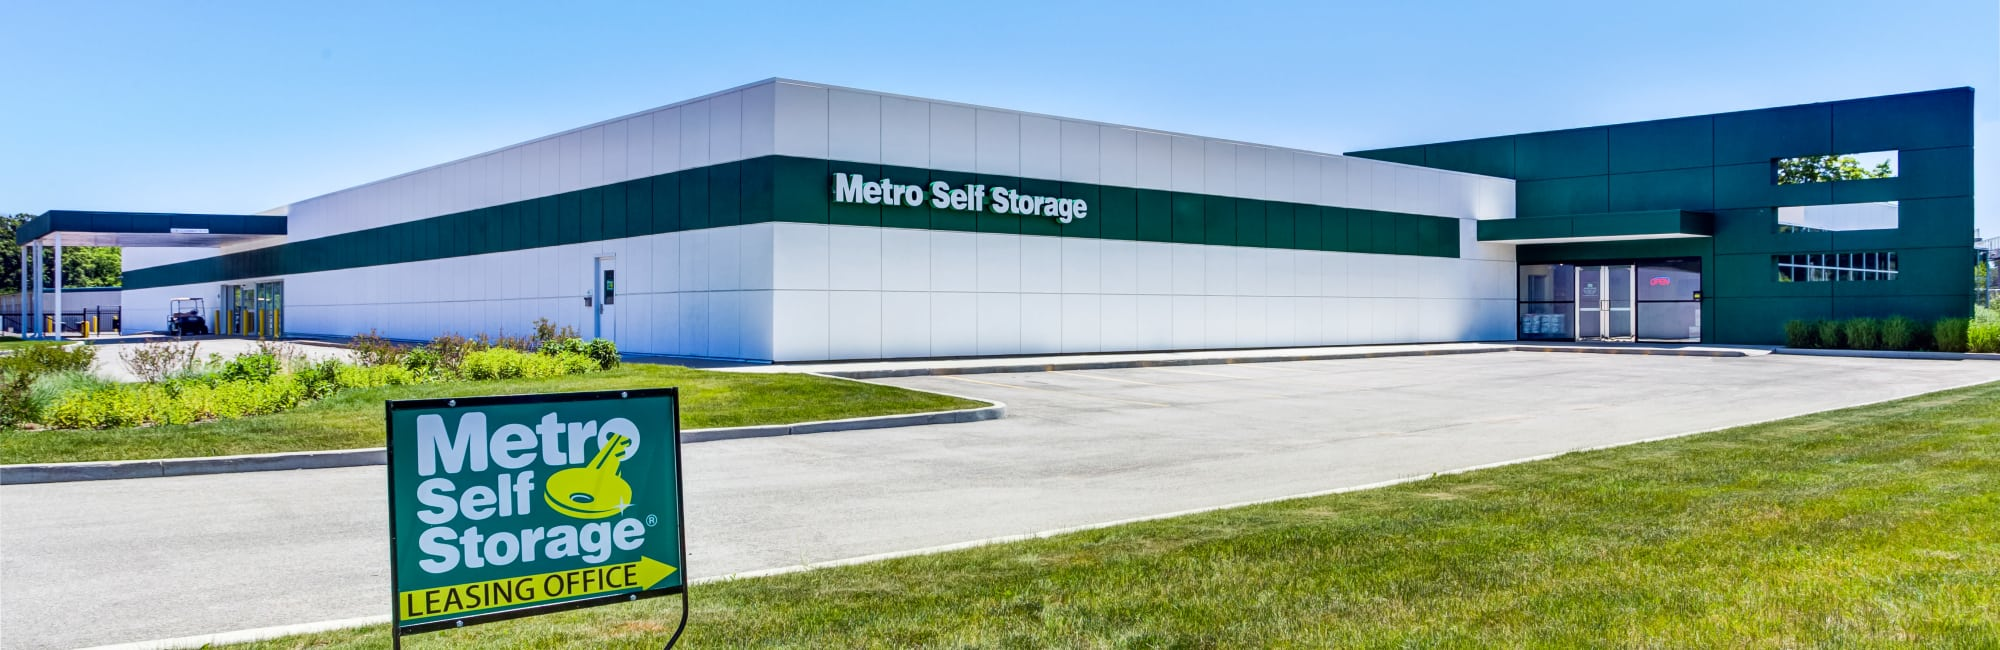 Metro Self Storage in Deerfield, IL